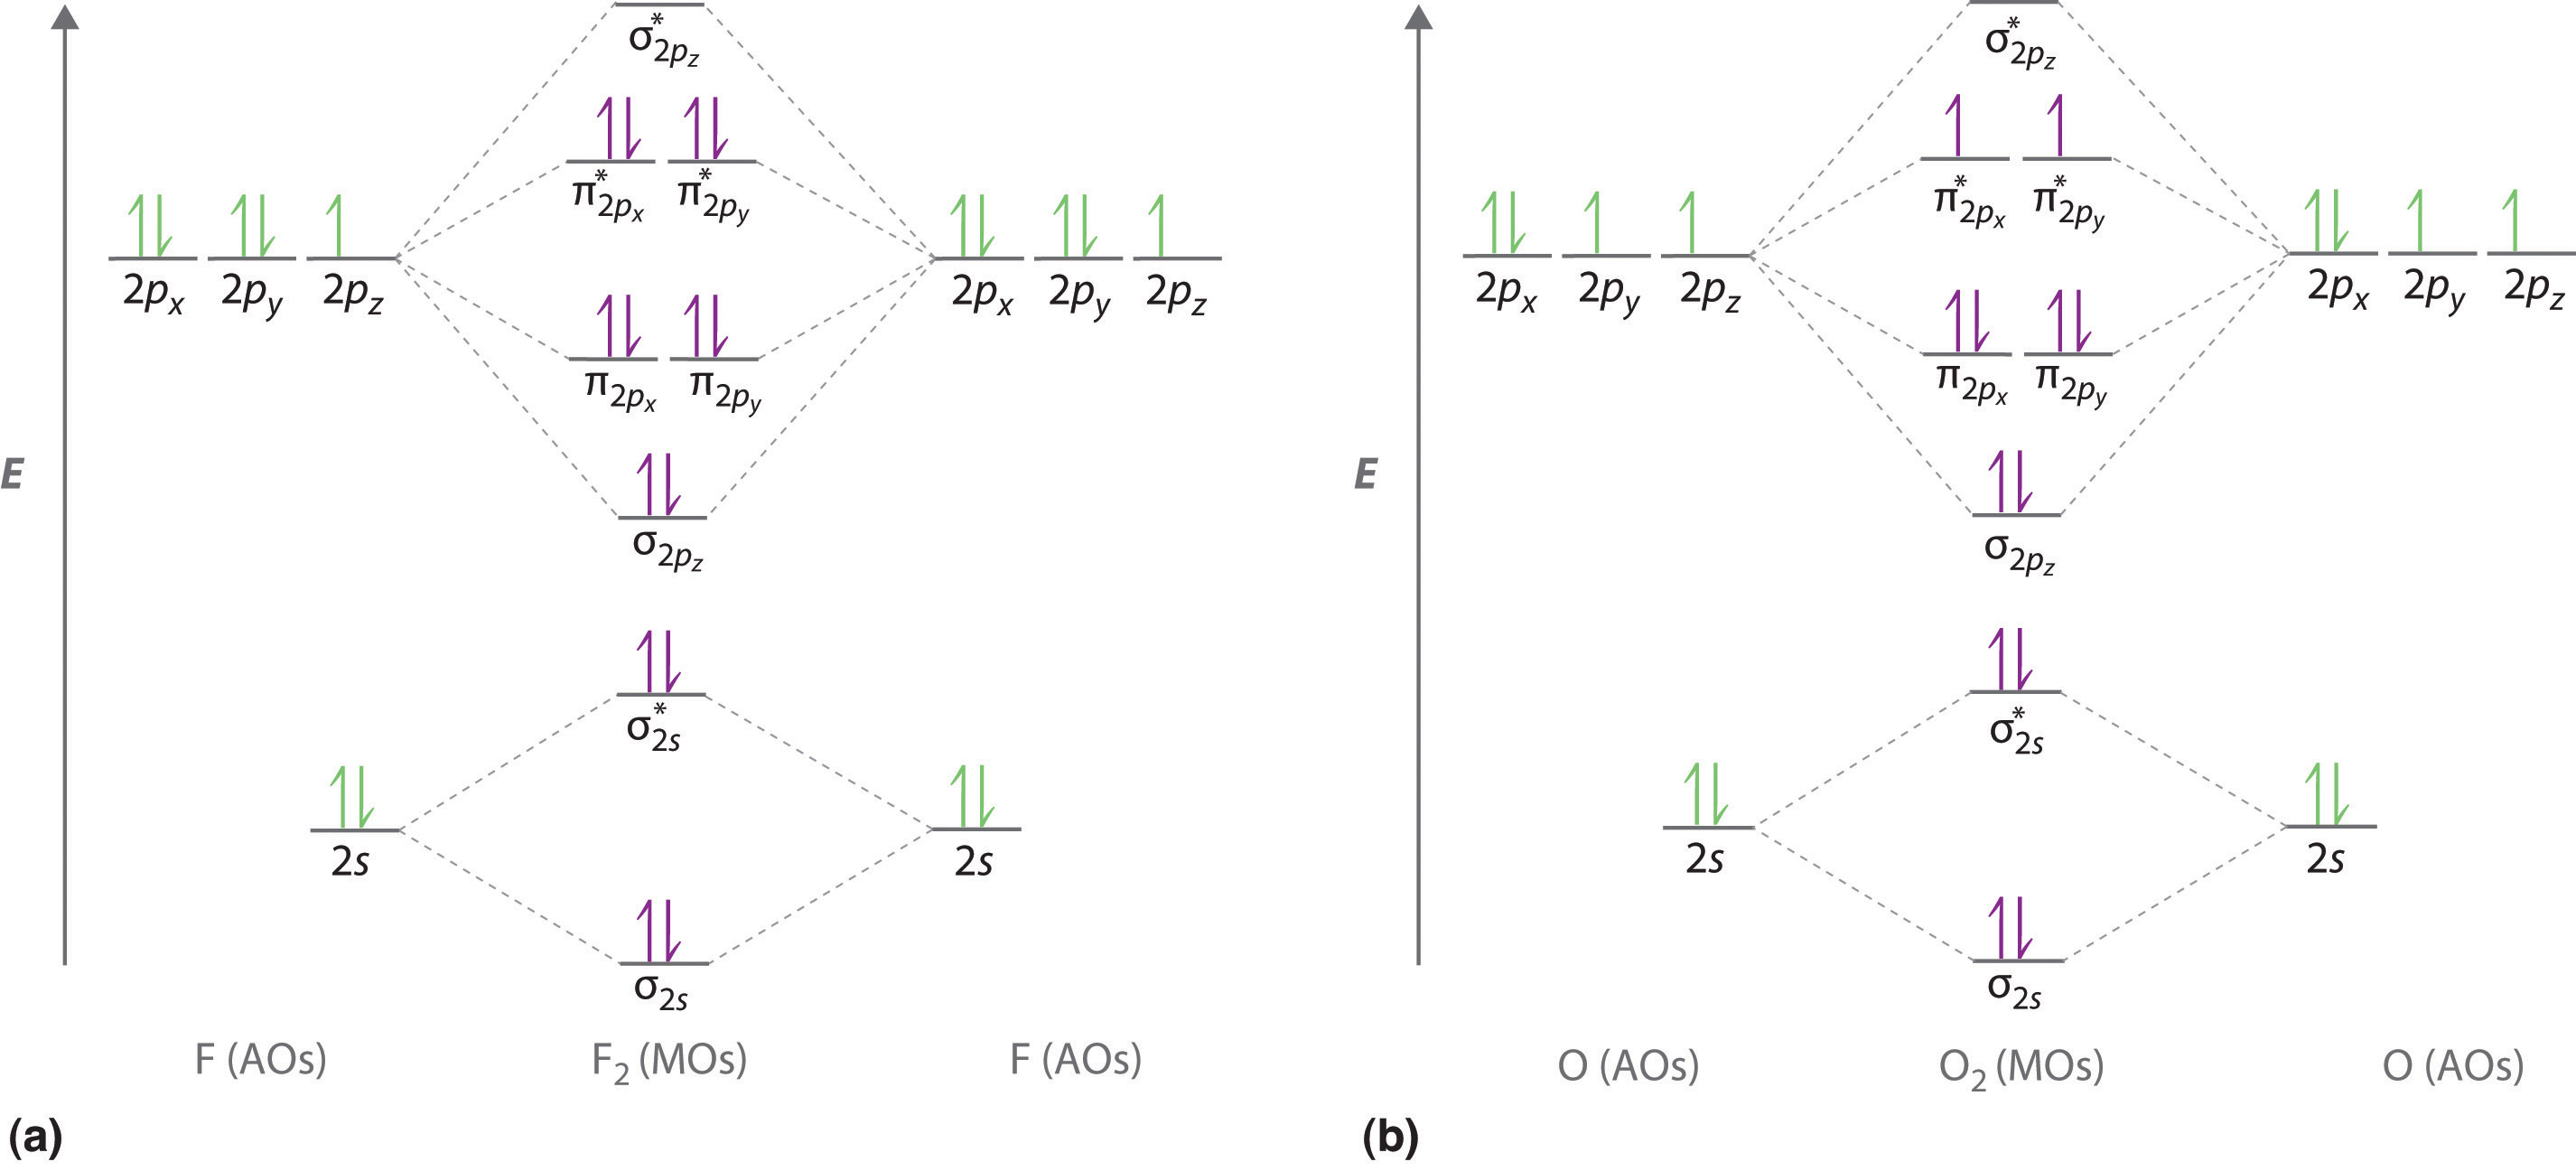 Delocalized Bonding and Molecular Orbitals B2 Molecular Orbital Diagram